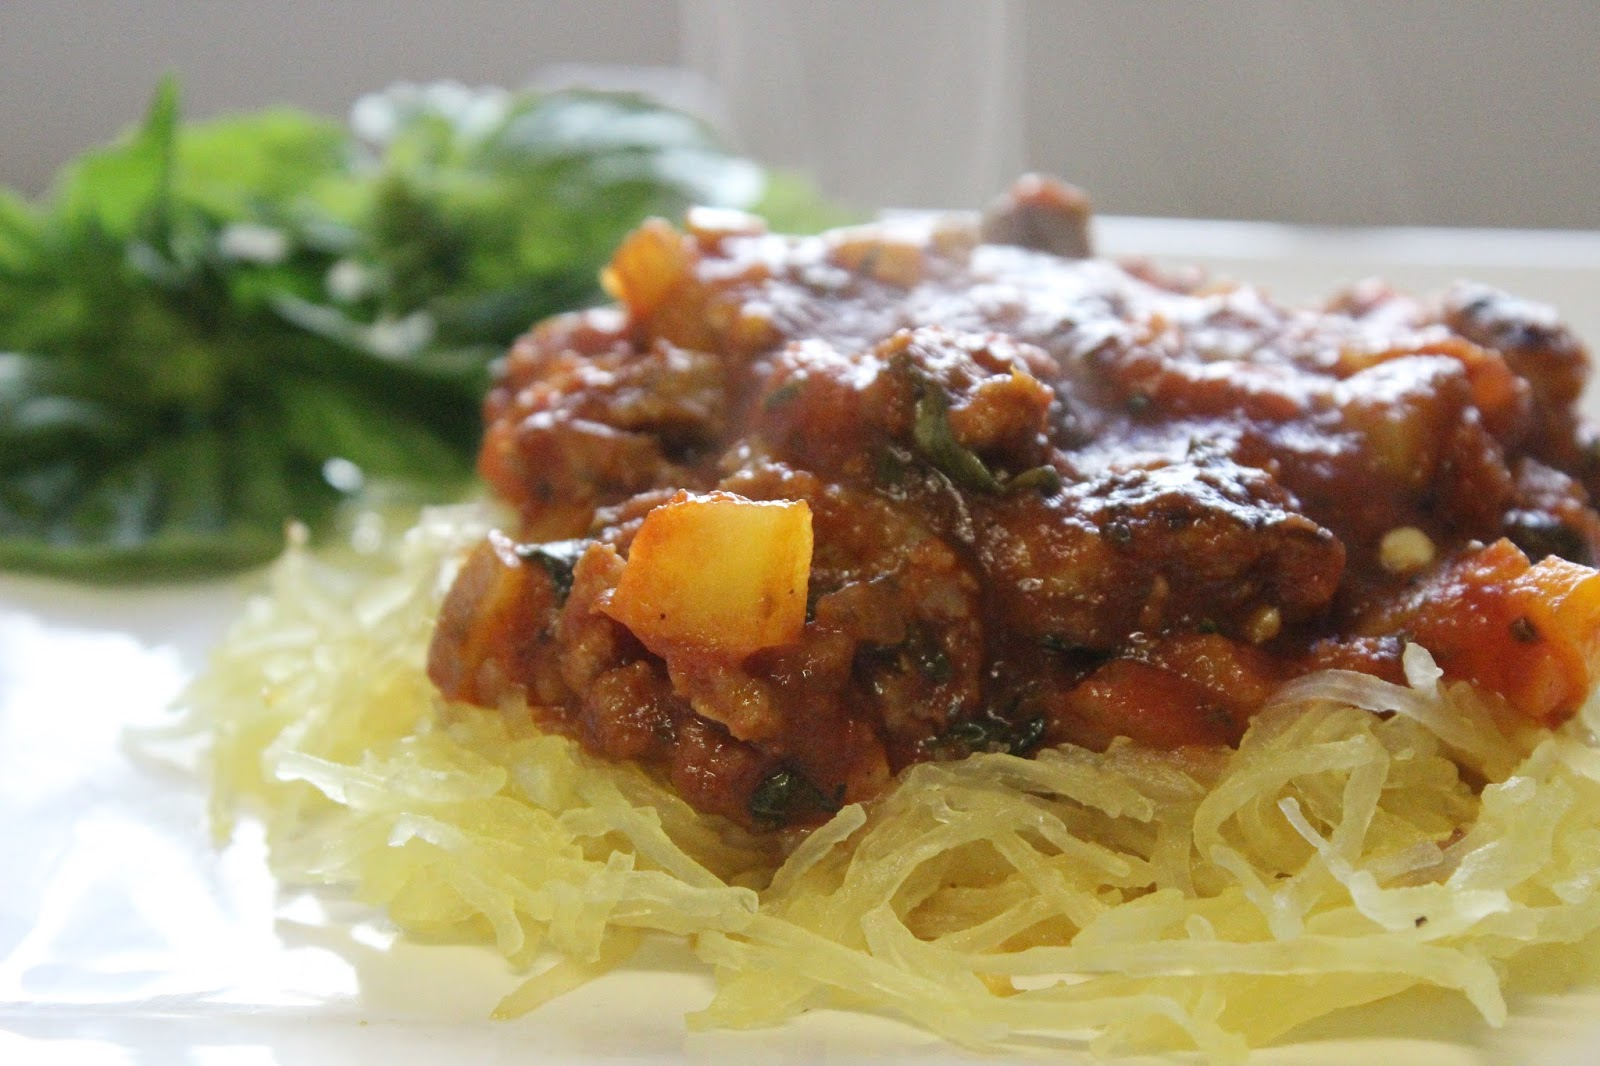 Pure Pursuit: Spaghetti Squash with Meat Sauce